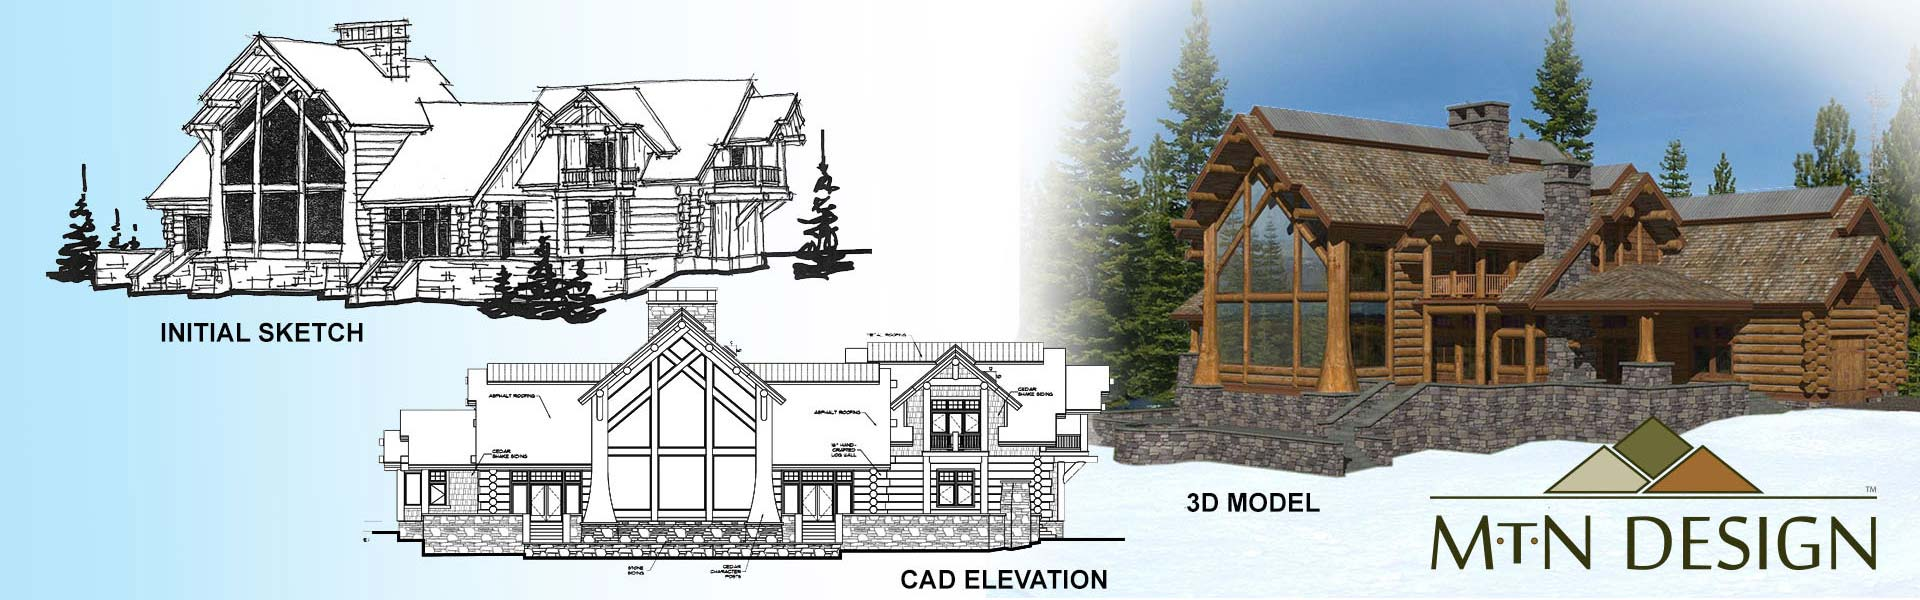 Design Process for Building Timber and Log Homes